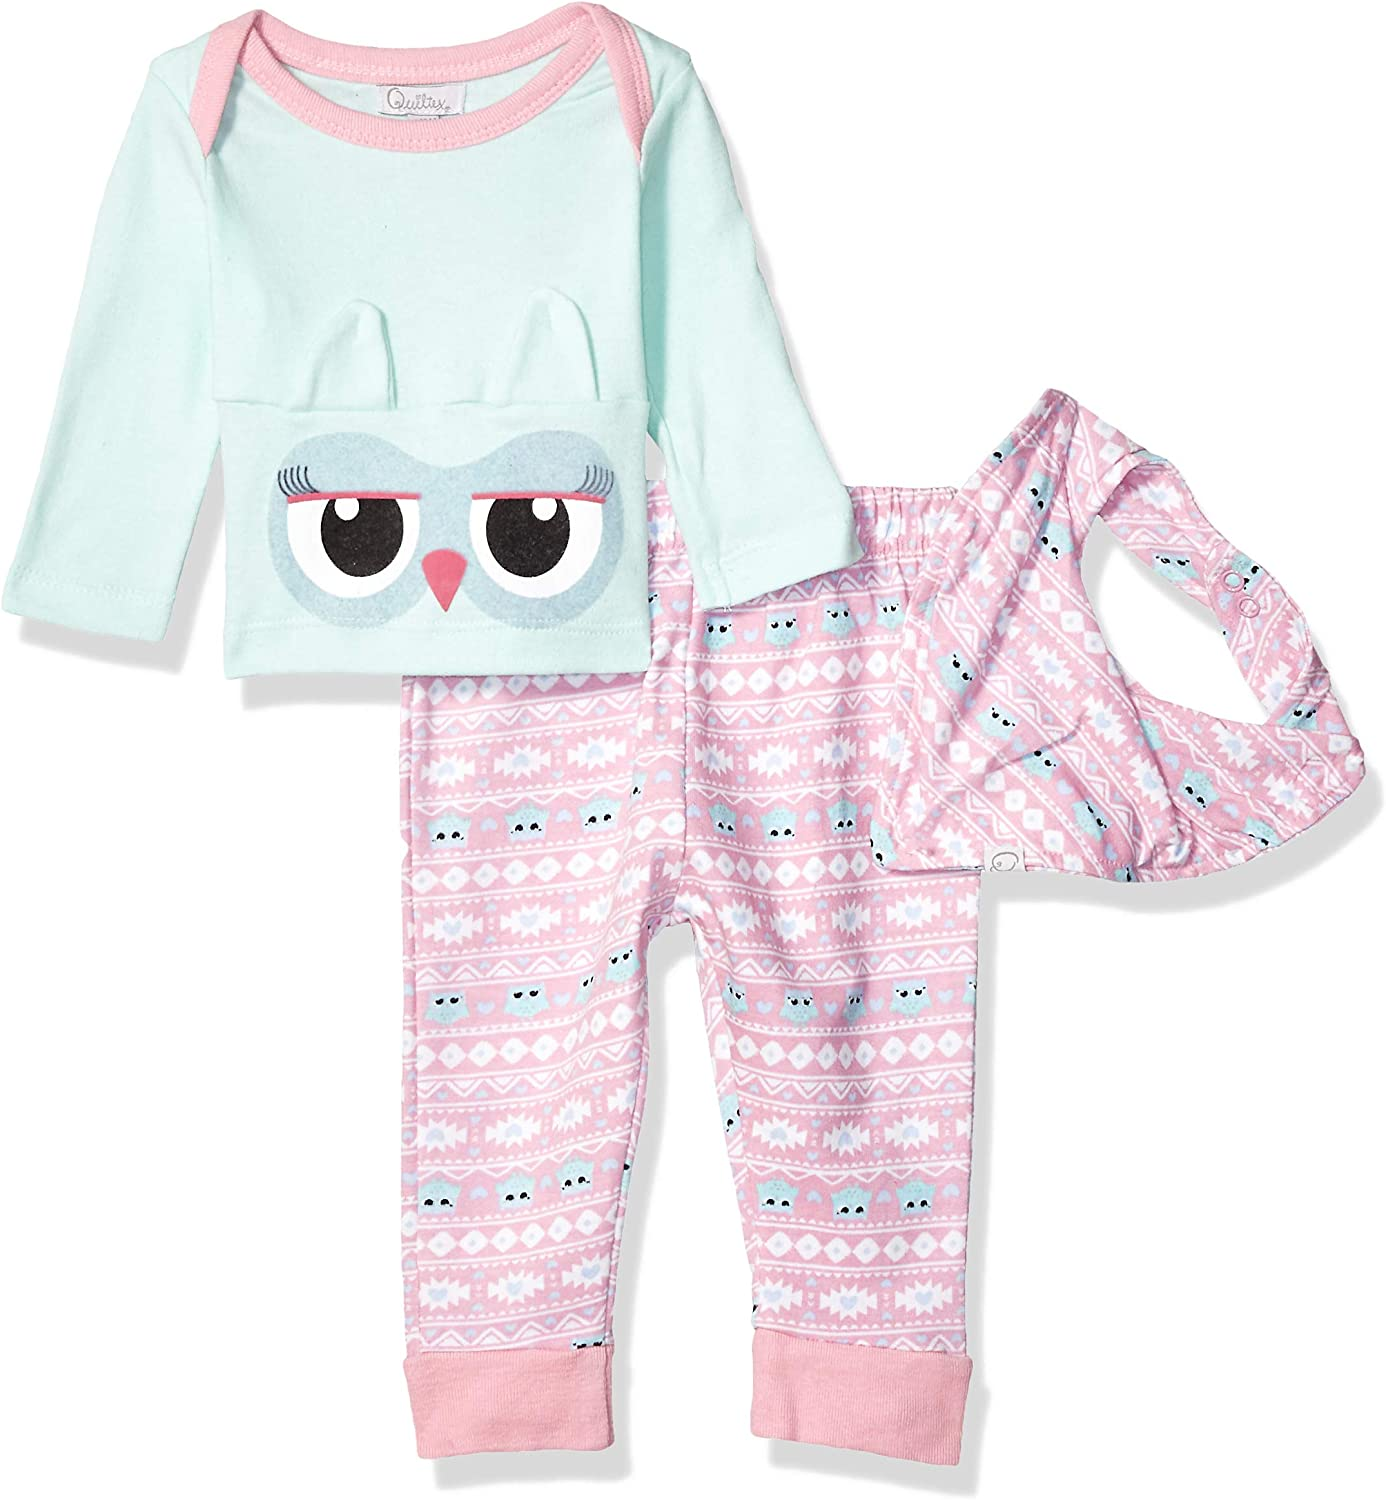 Quiltex girls Owl Love You Footed Pants, Top, and Bib 3pc Set